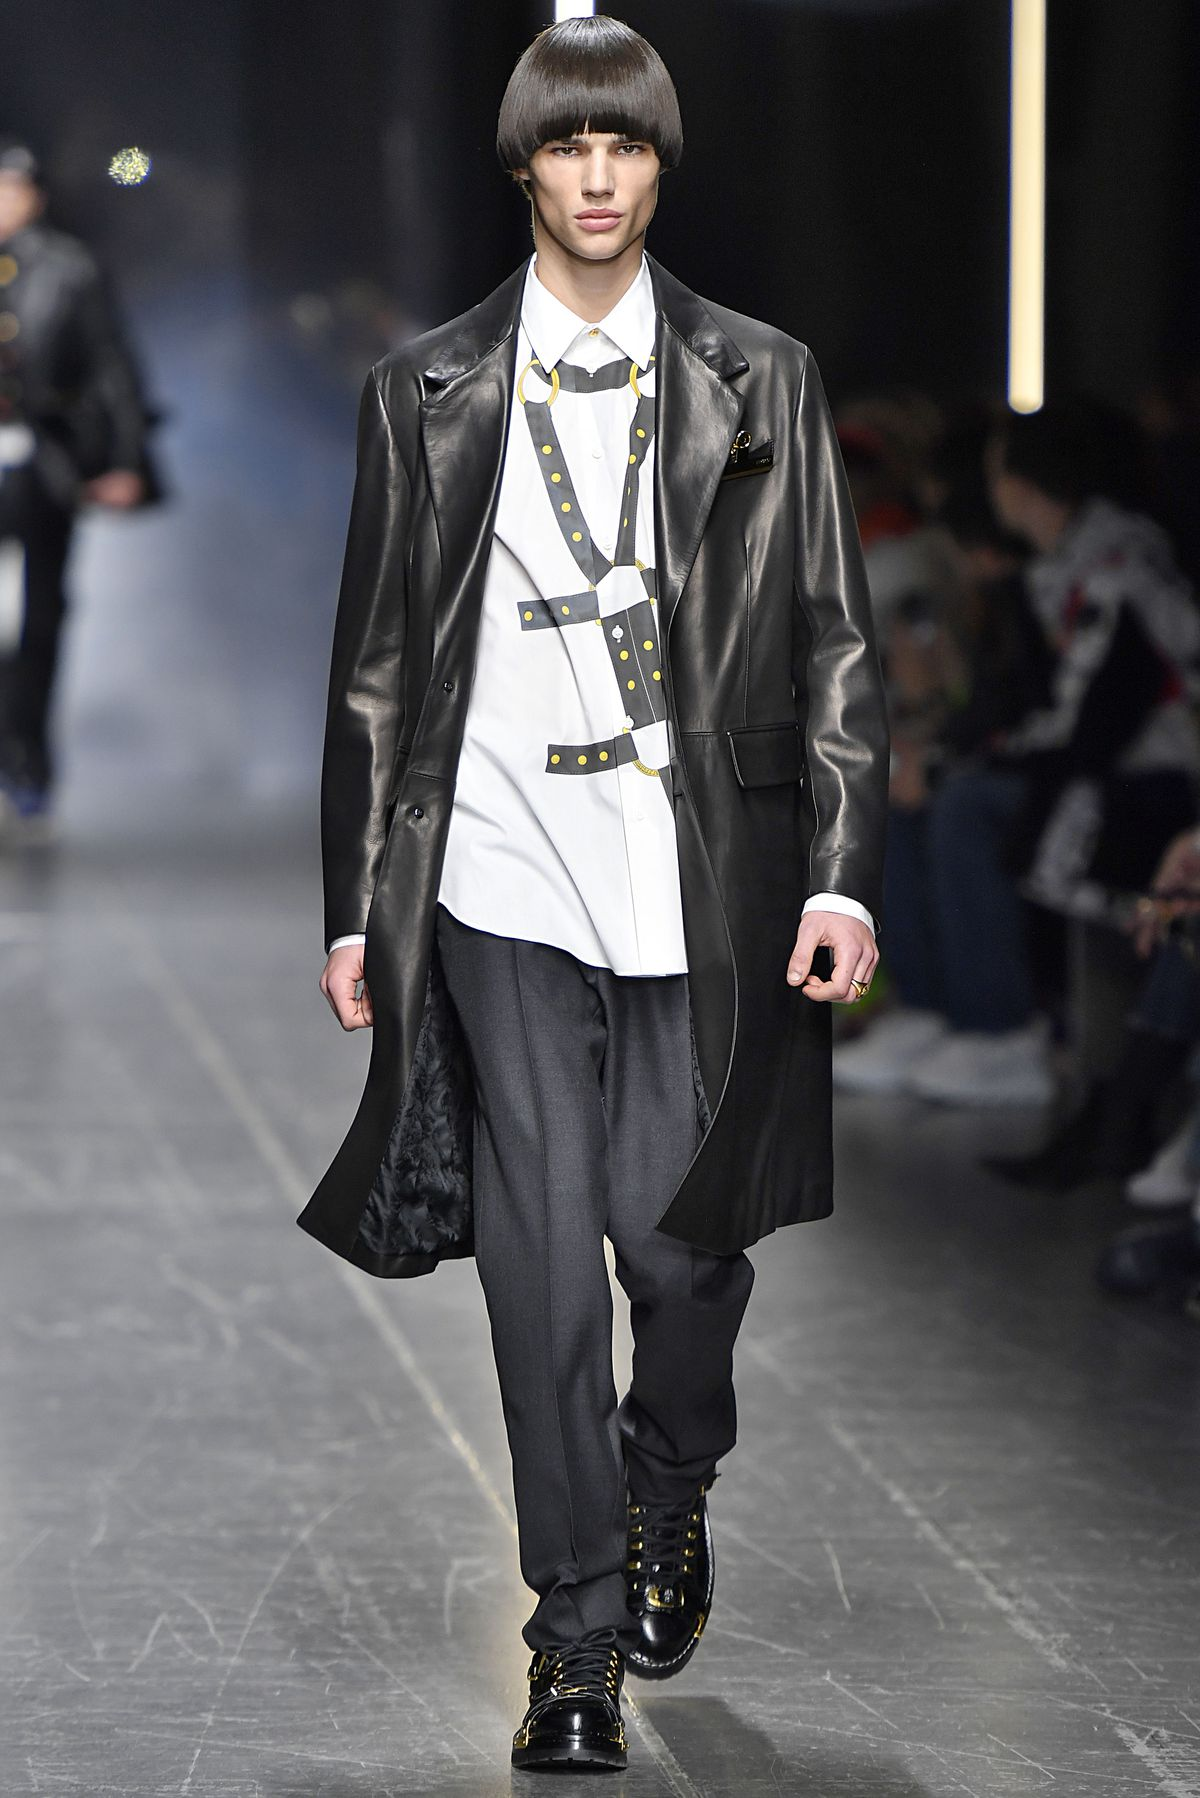 75da34d9f9fd A look from Versace s fall winter 2019 collection that includes a leather  coat and a